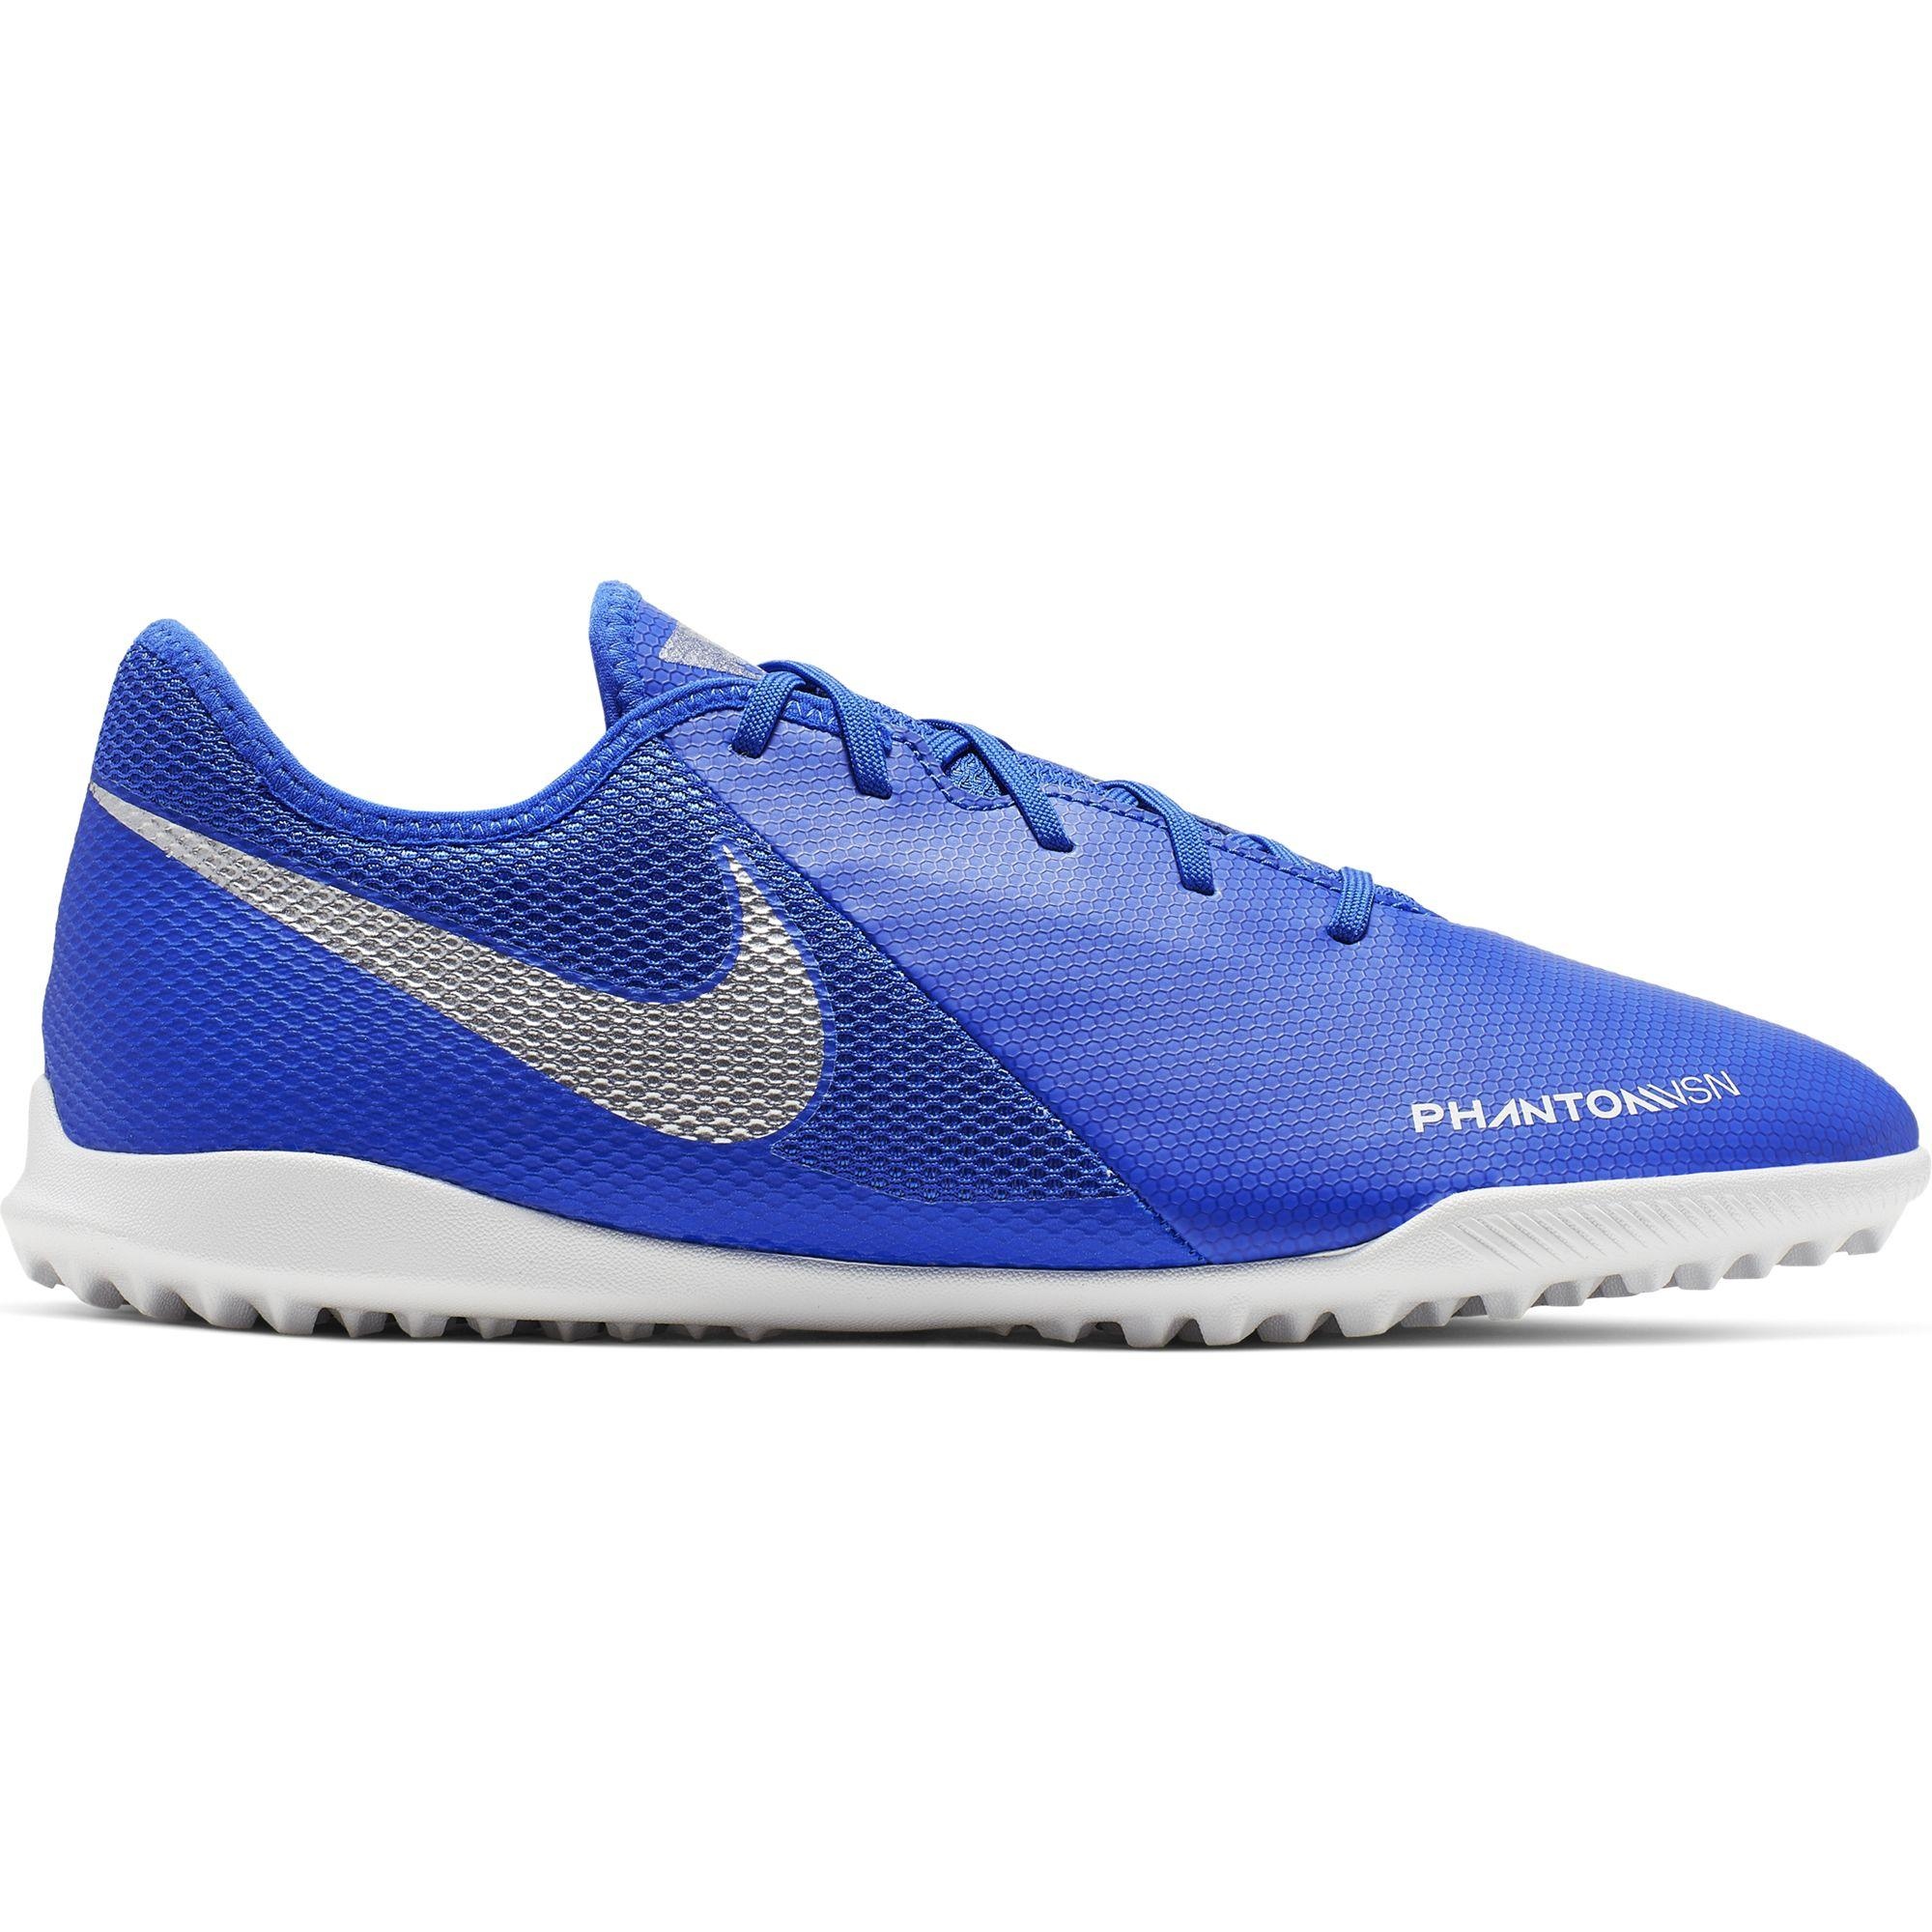 7eec02ffe Nike Futsal Shoes Phantom Vsn Academy Tf Racer Blue chrome-white ...